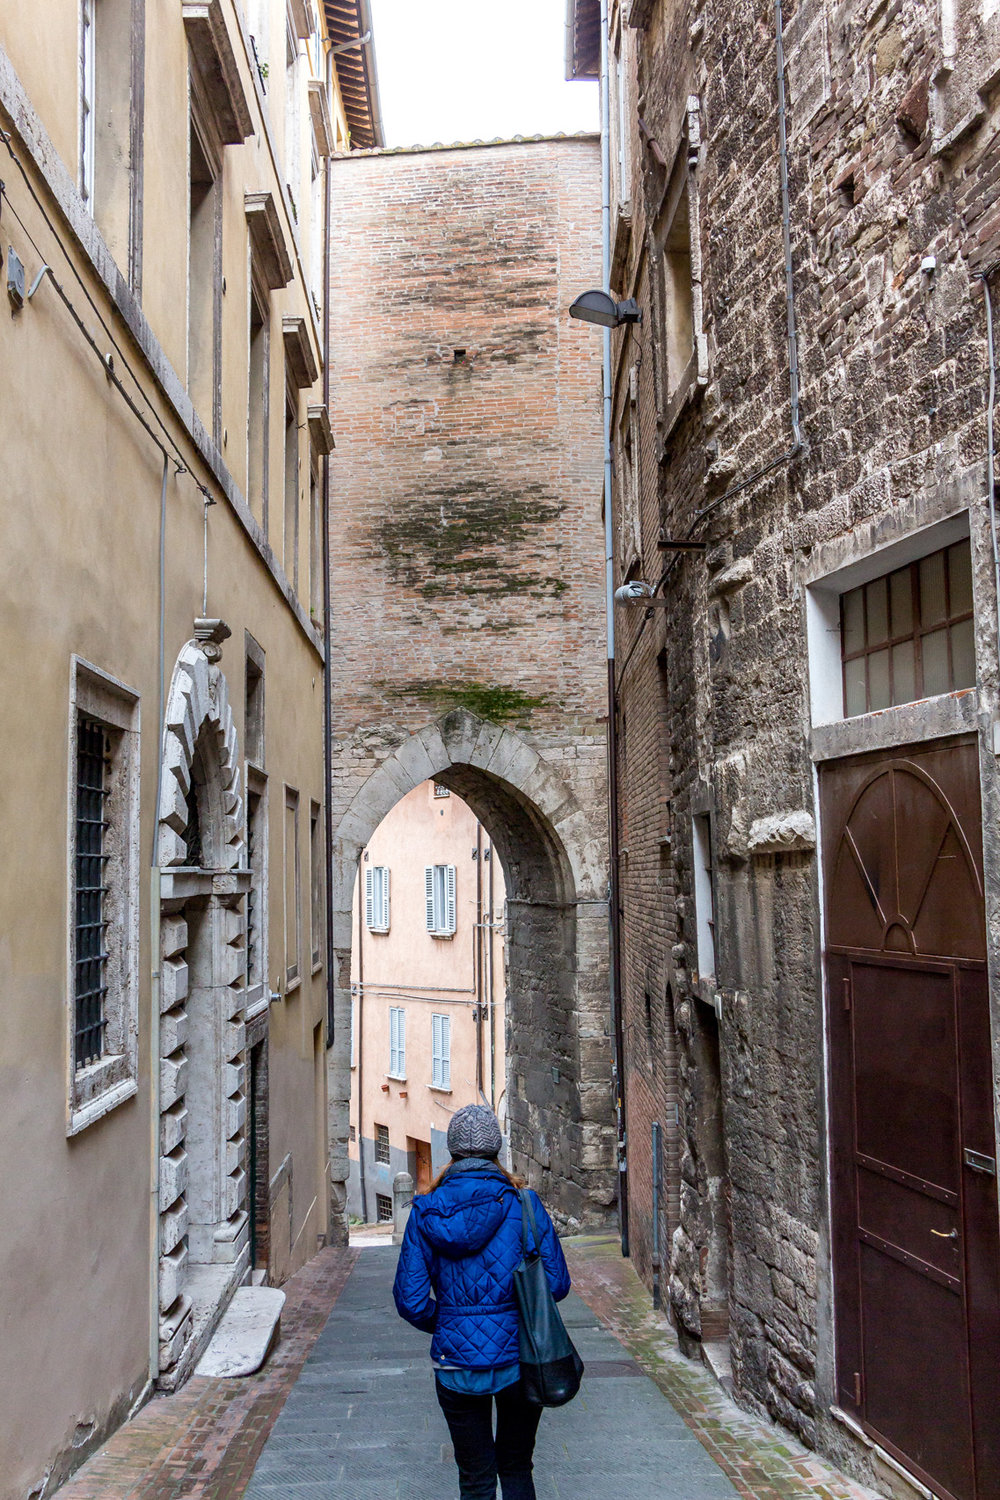 Walking the streets of Perugia, Italy